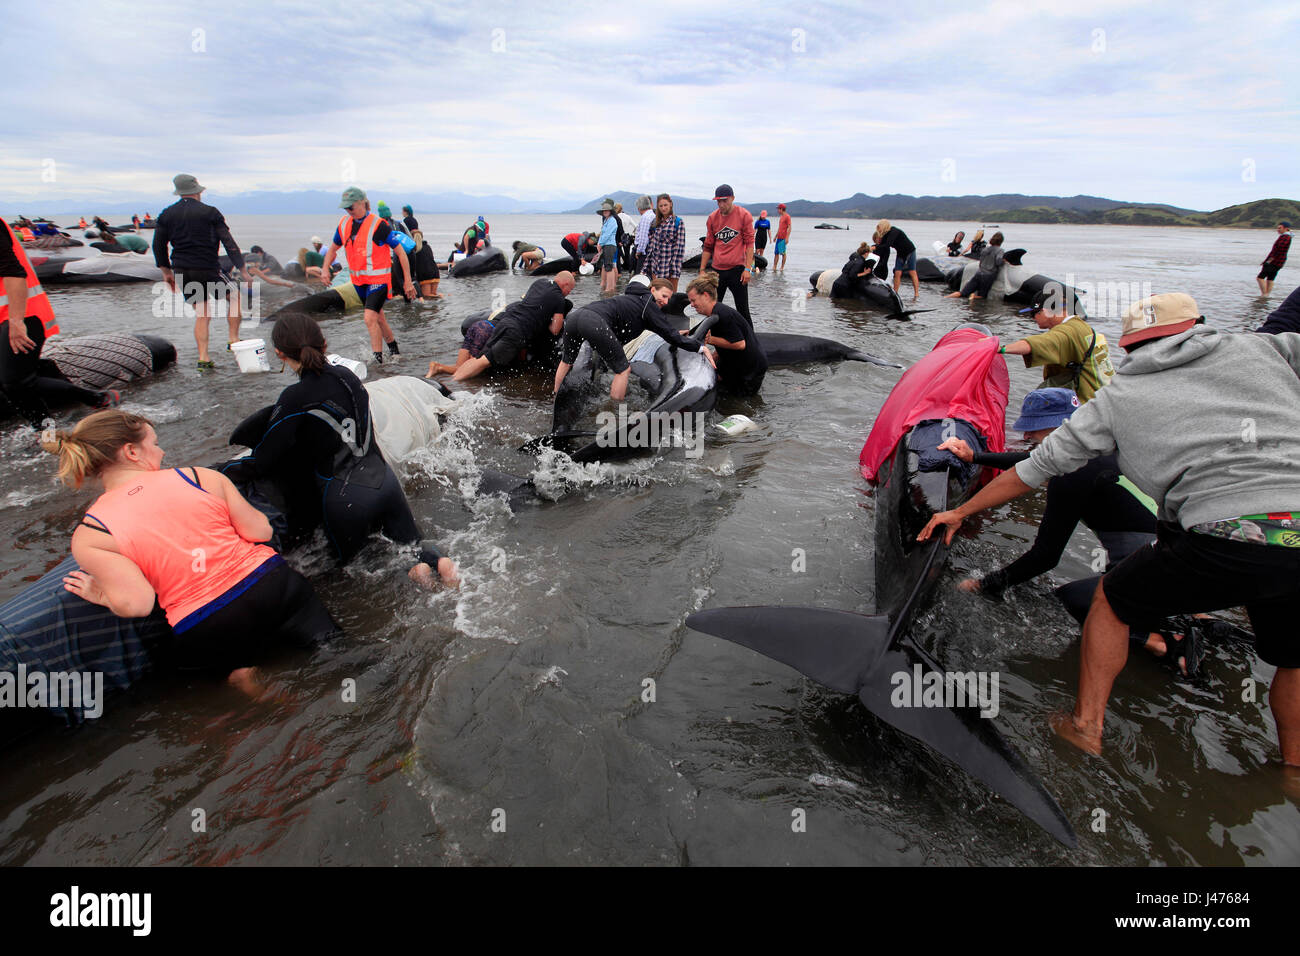 Picture by Tim Cuff - 10 & 11 February 2017  - Mass pilot whale stranding at Farewell Spit, Golden Bay, New - Stock Image